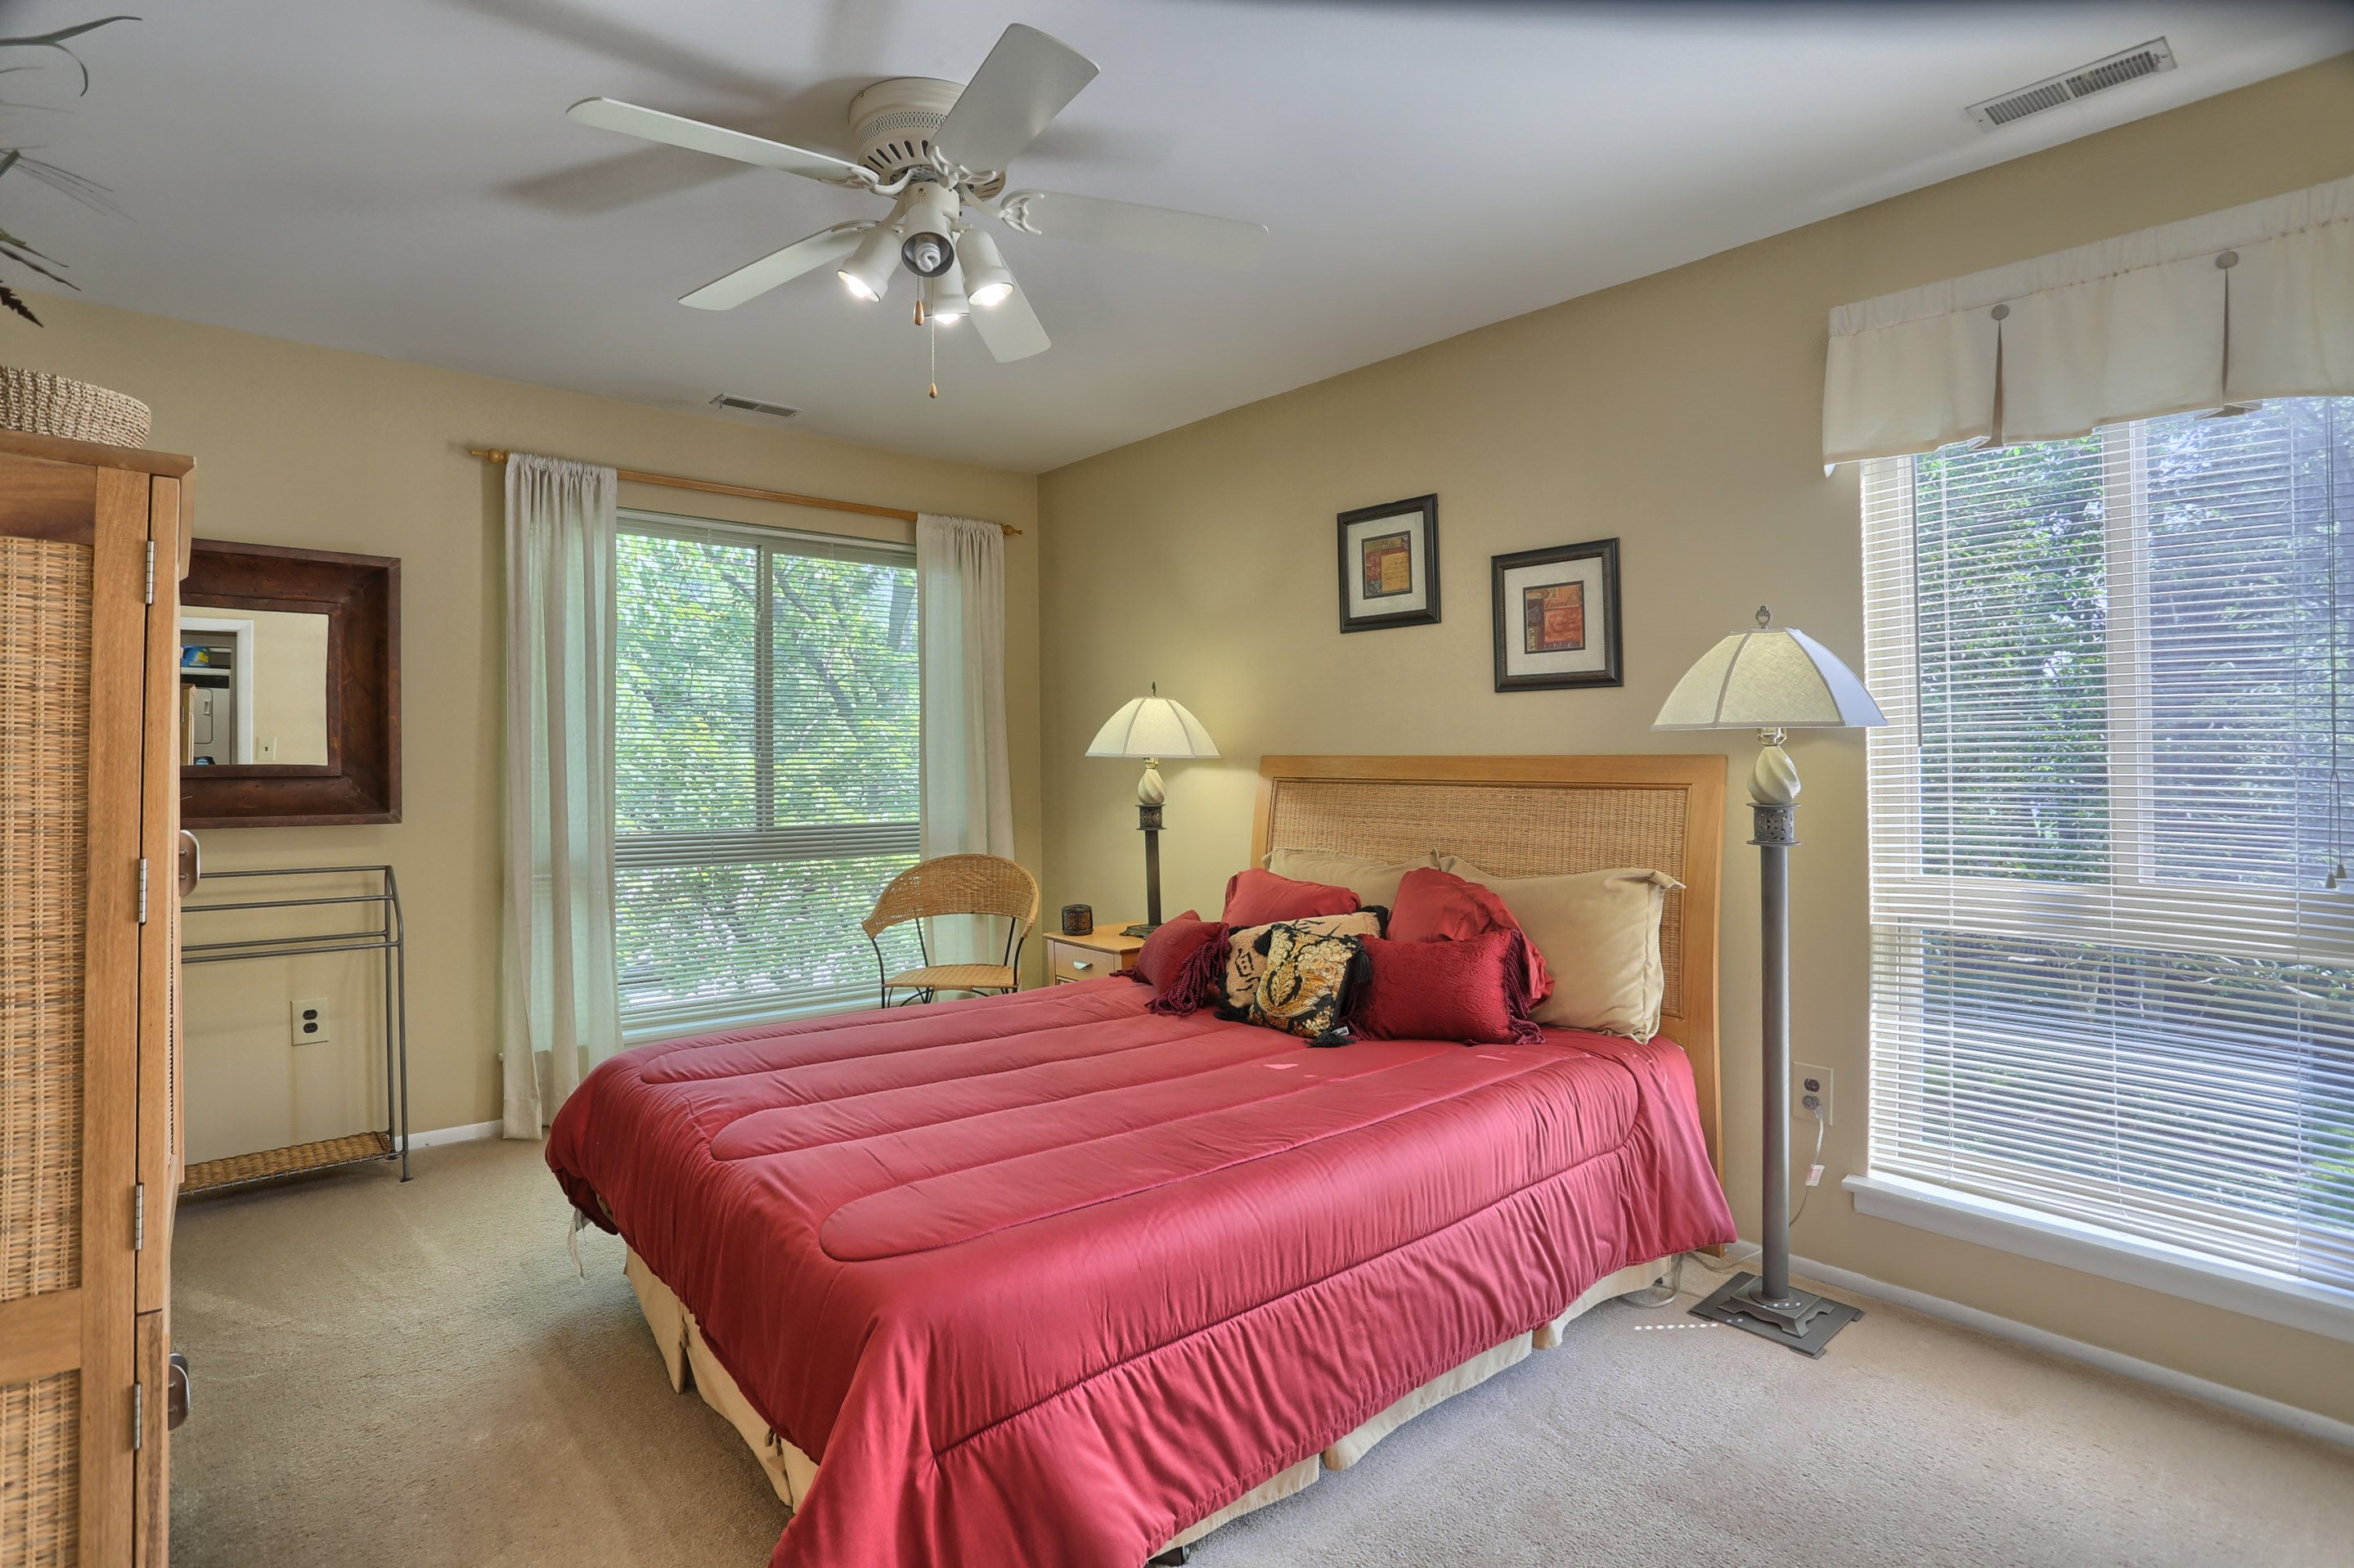 Photos And Video Of Treeview Apartments In Harrisburg Pa